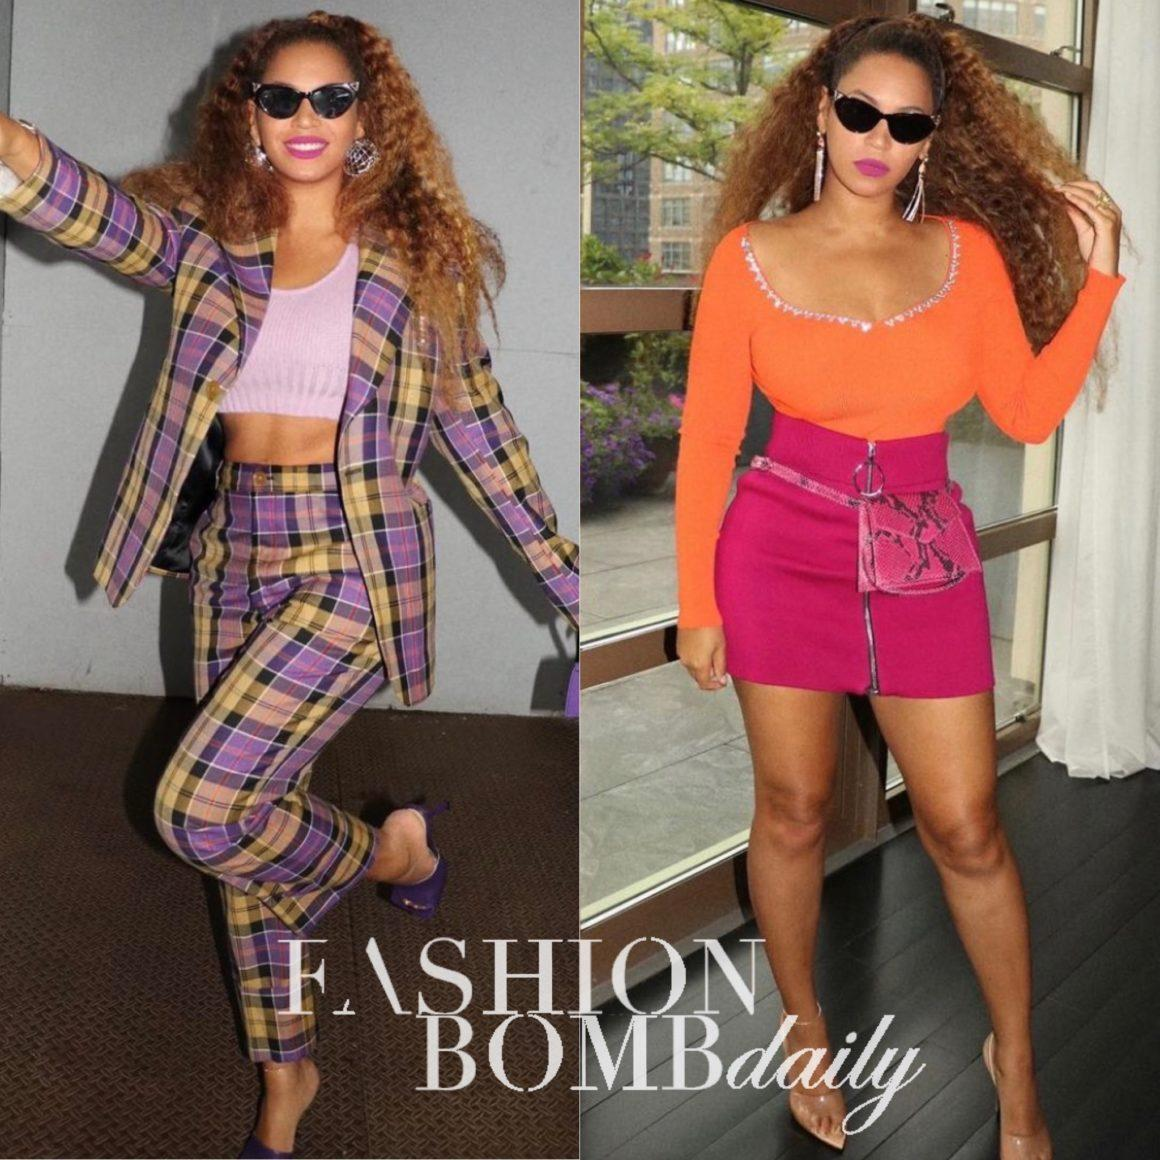 Beyoncé Shares Two New Looks Wearing Vivienne Westwood Checkered Pantsuit and Area Orange Crystal Trim Bodysuit With Pink Zippered Mini Skirt